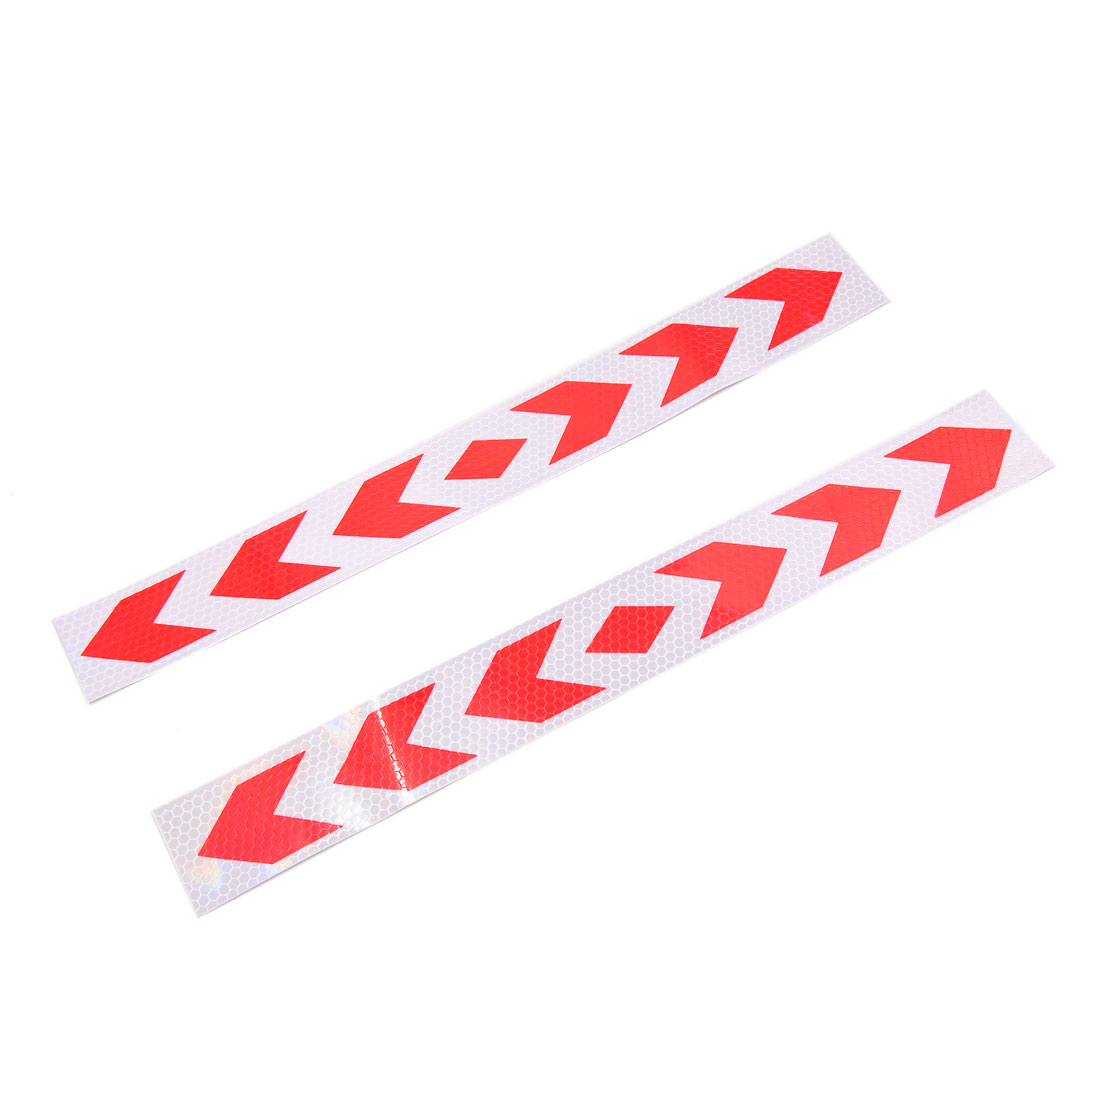 2Pcs Red White Arrows Pattern Car Reflective Sticker Safety Warning Tape Decals